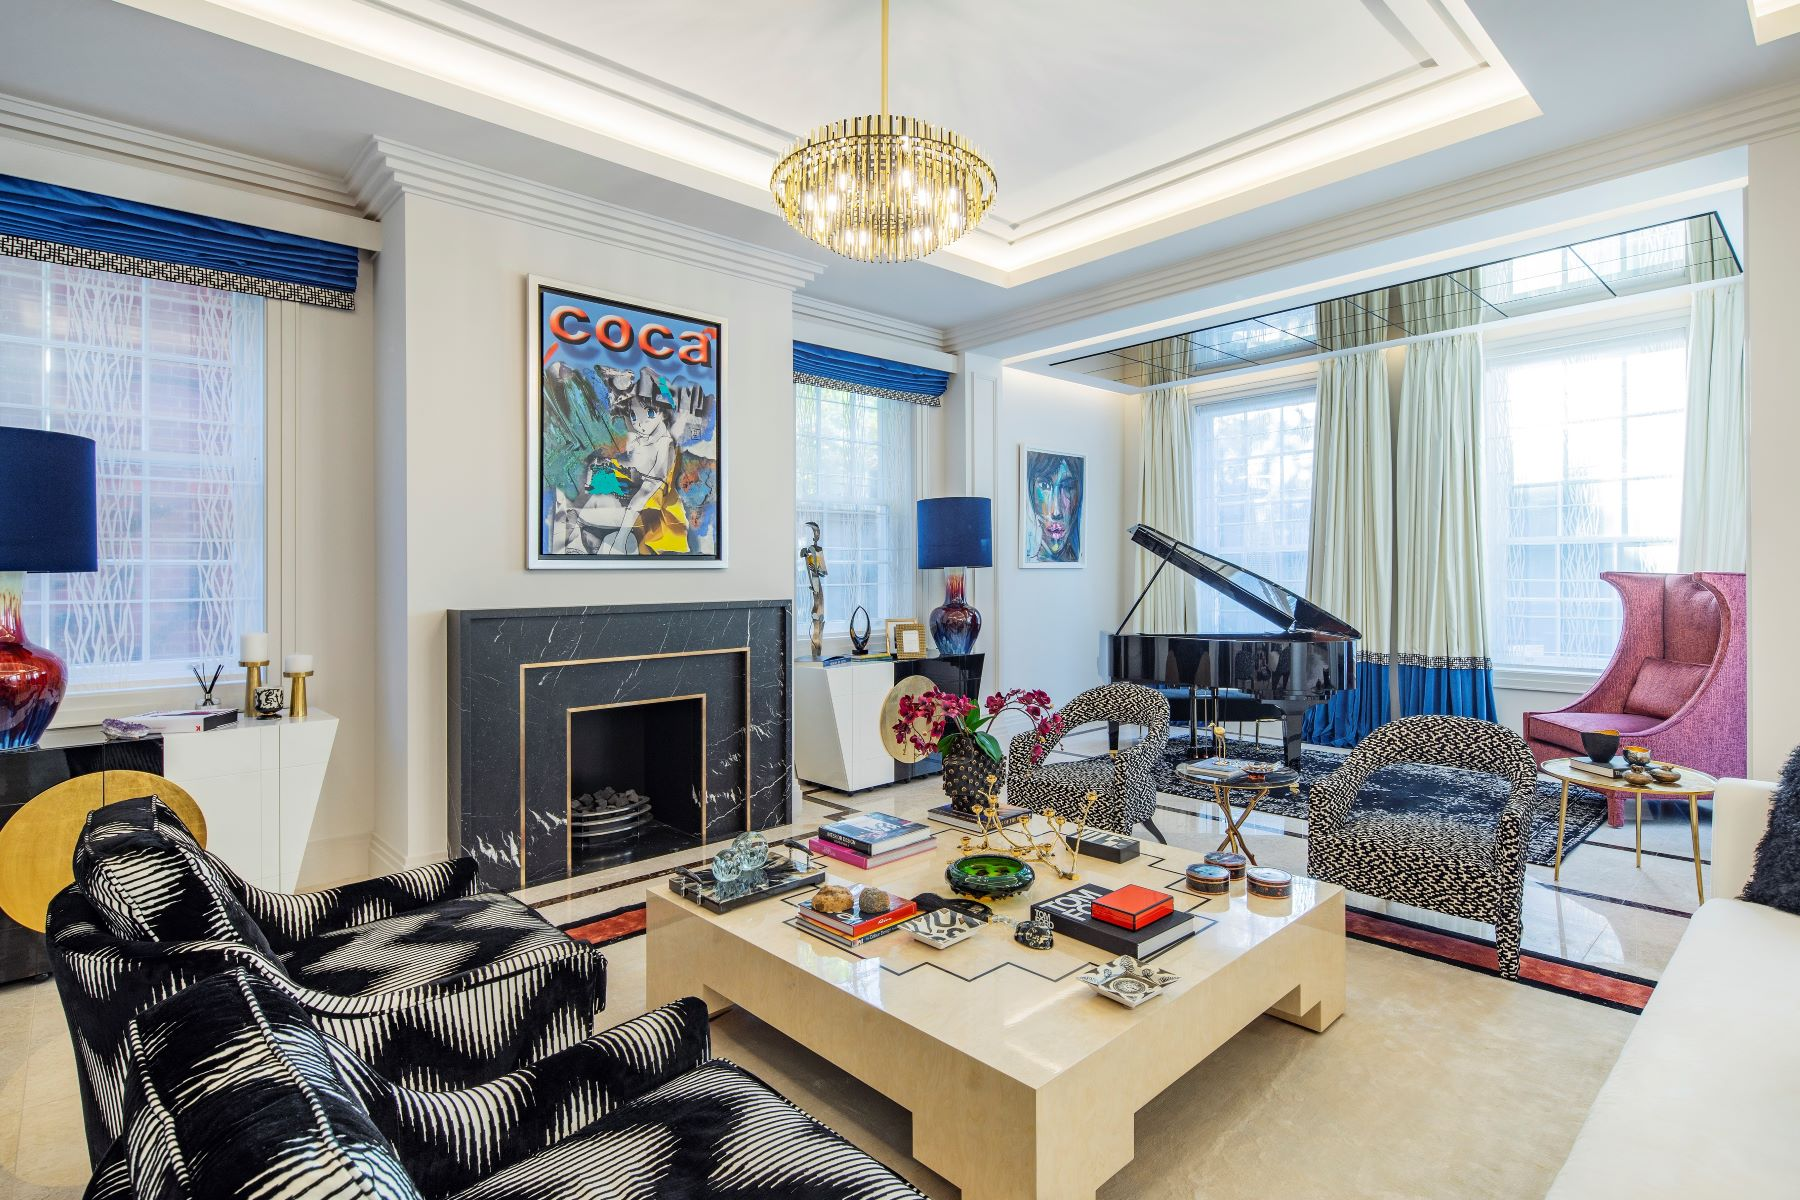 Additional photo for property listing at Avenue Road,St John's Wood, NW8 87 Avenue Road, St. John's Wood Londra, Ingiltere NW8 6JD Birleşik Krallık